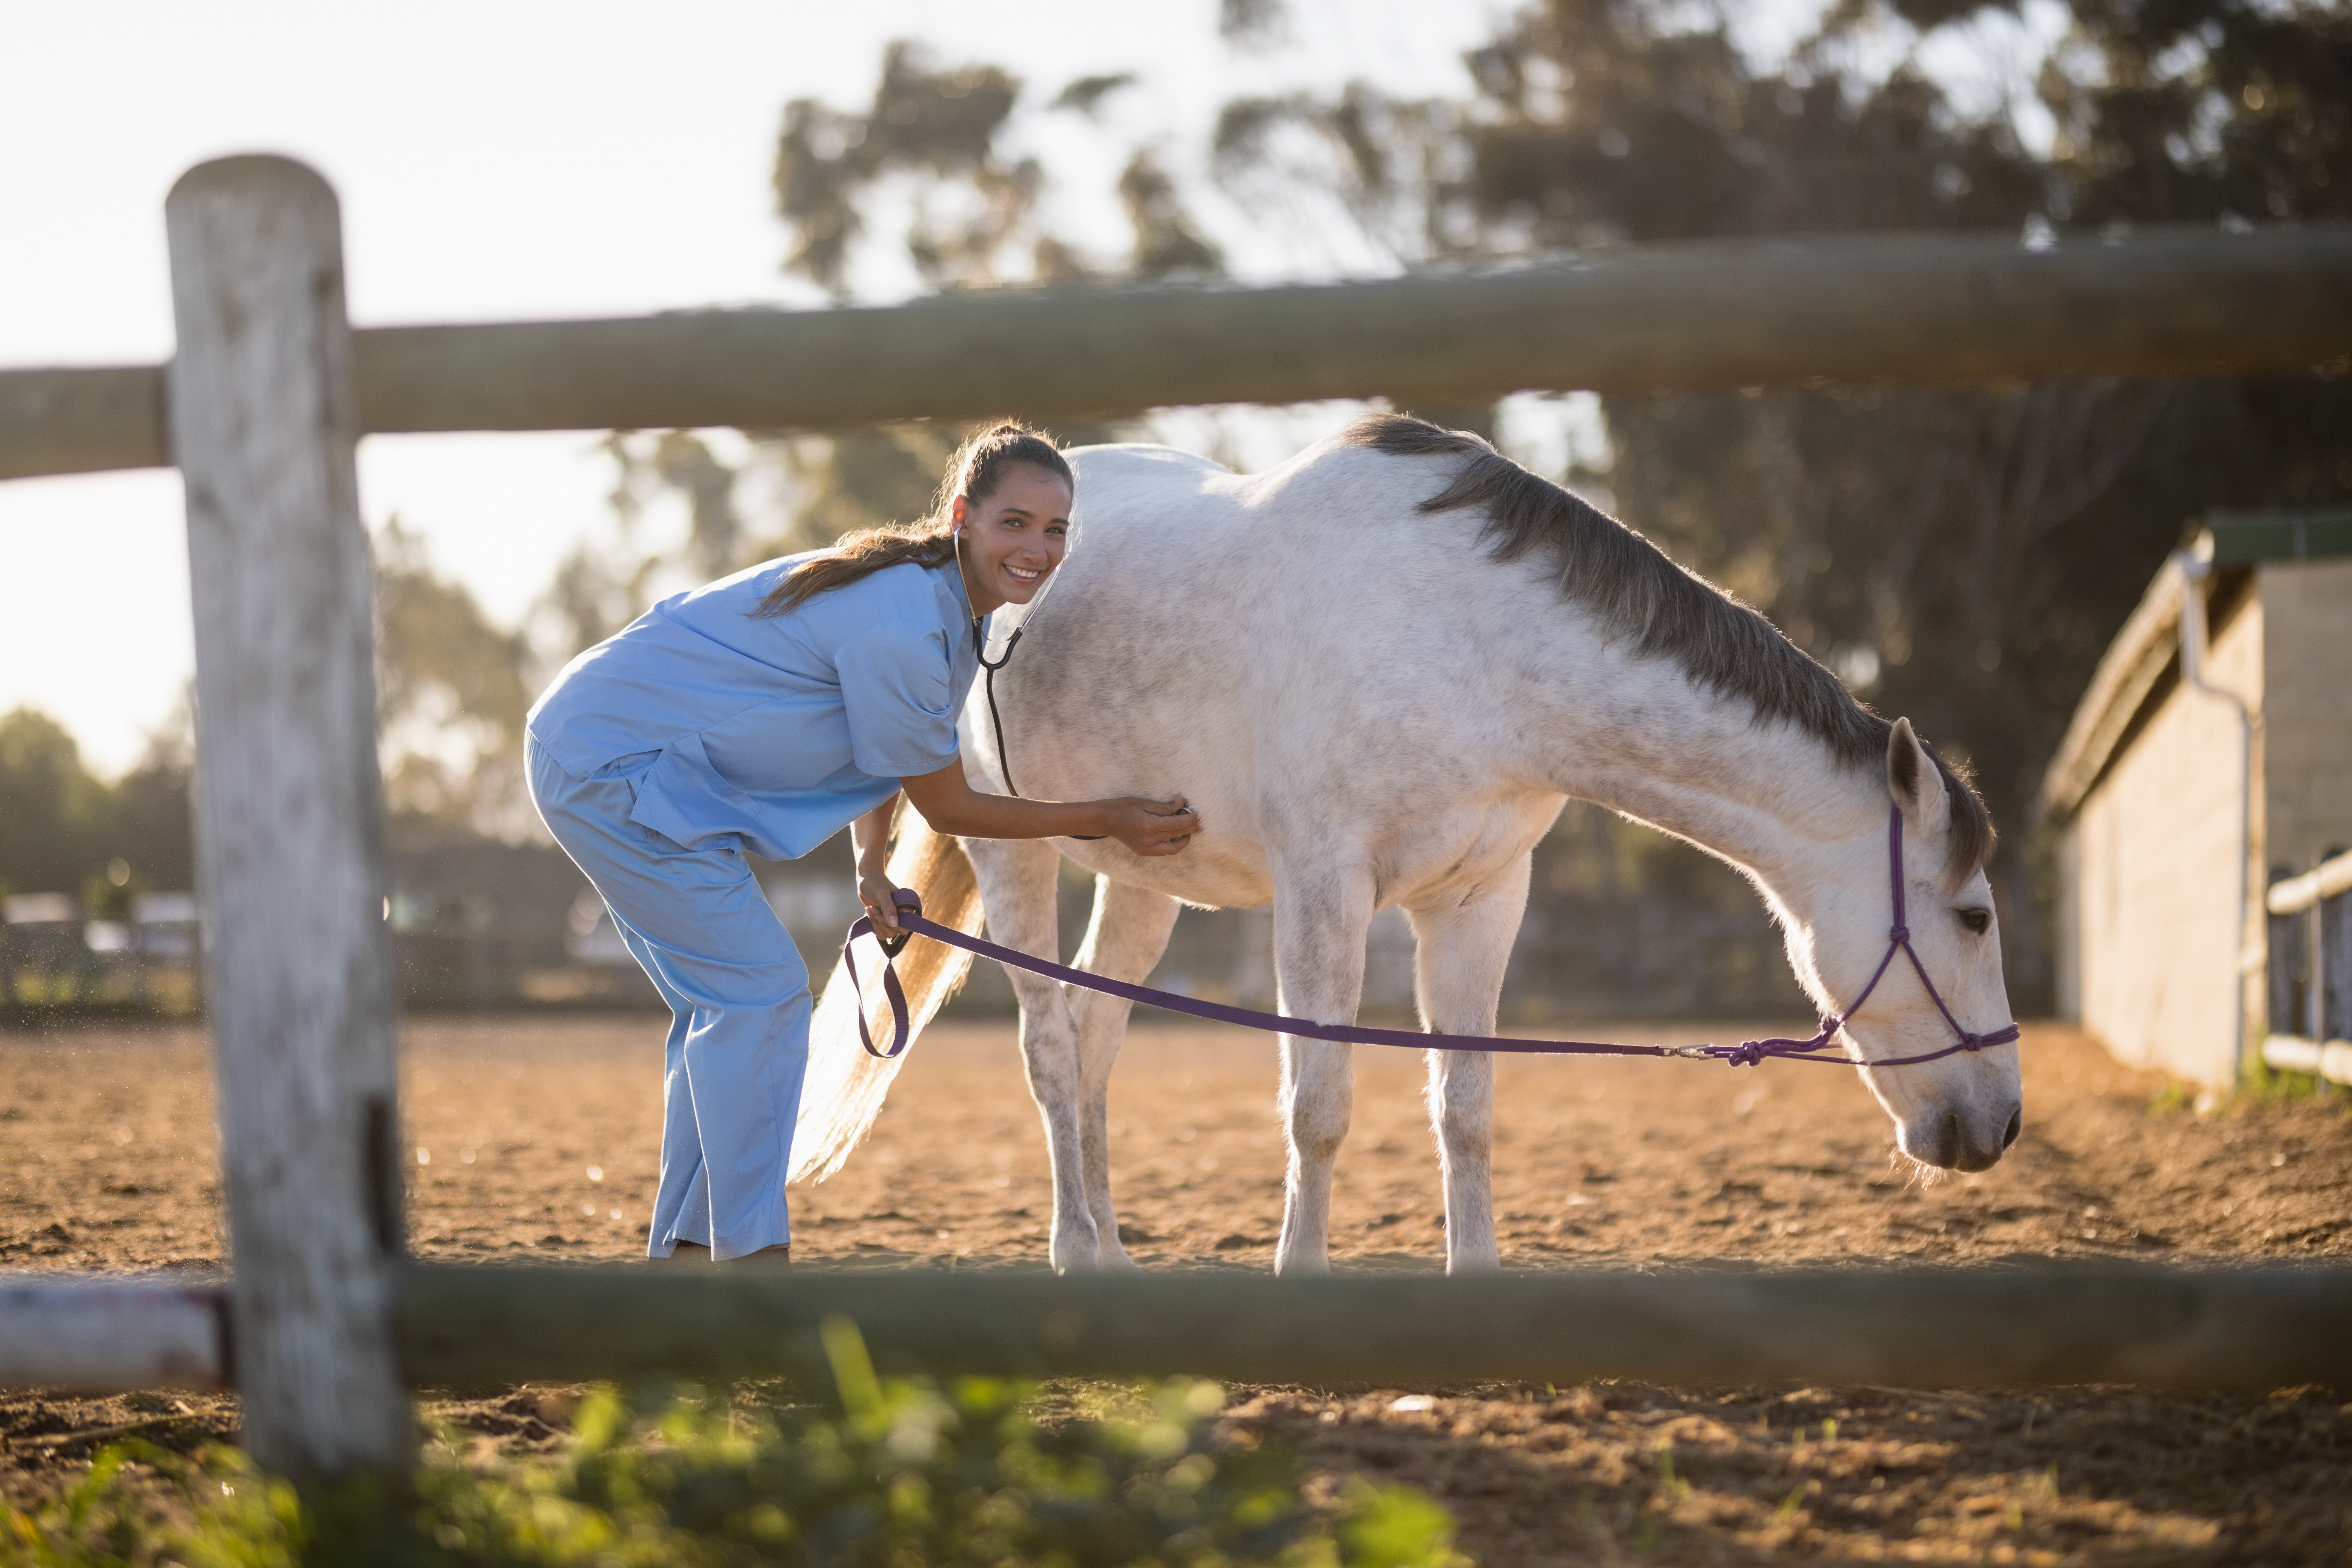 Evening Vet and Horse at 1870 Farm